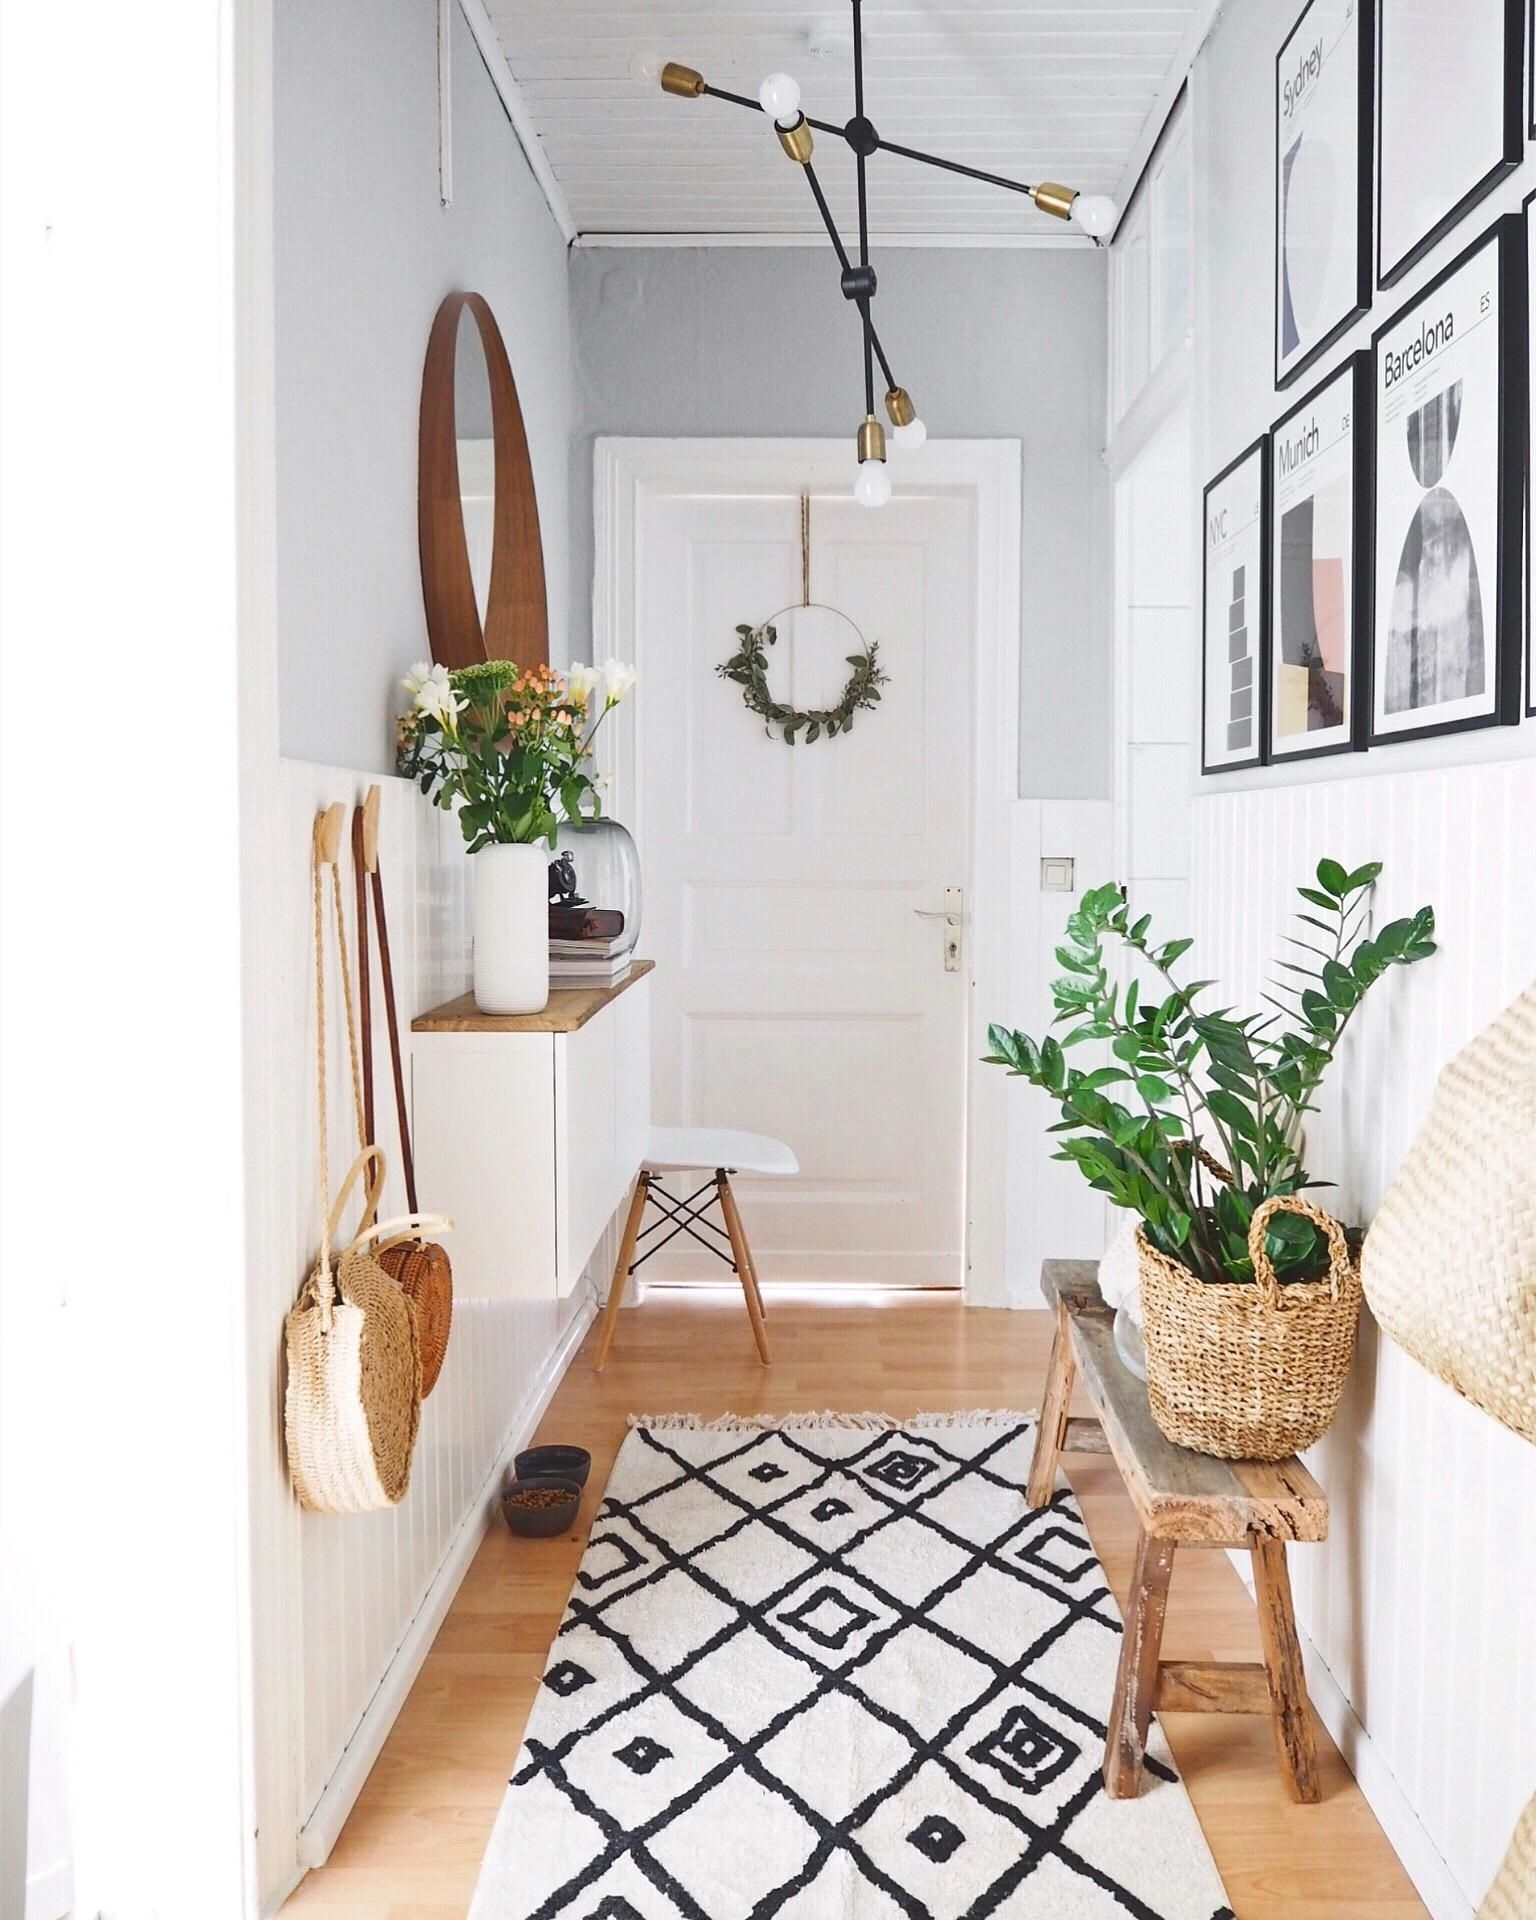 Hallway ideas: get inspired in the community!